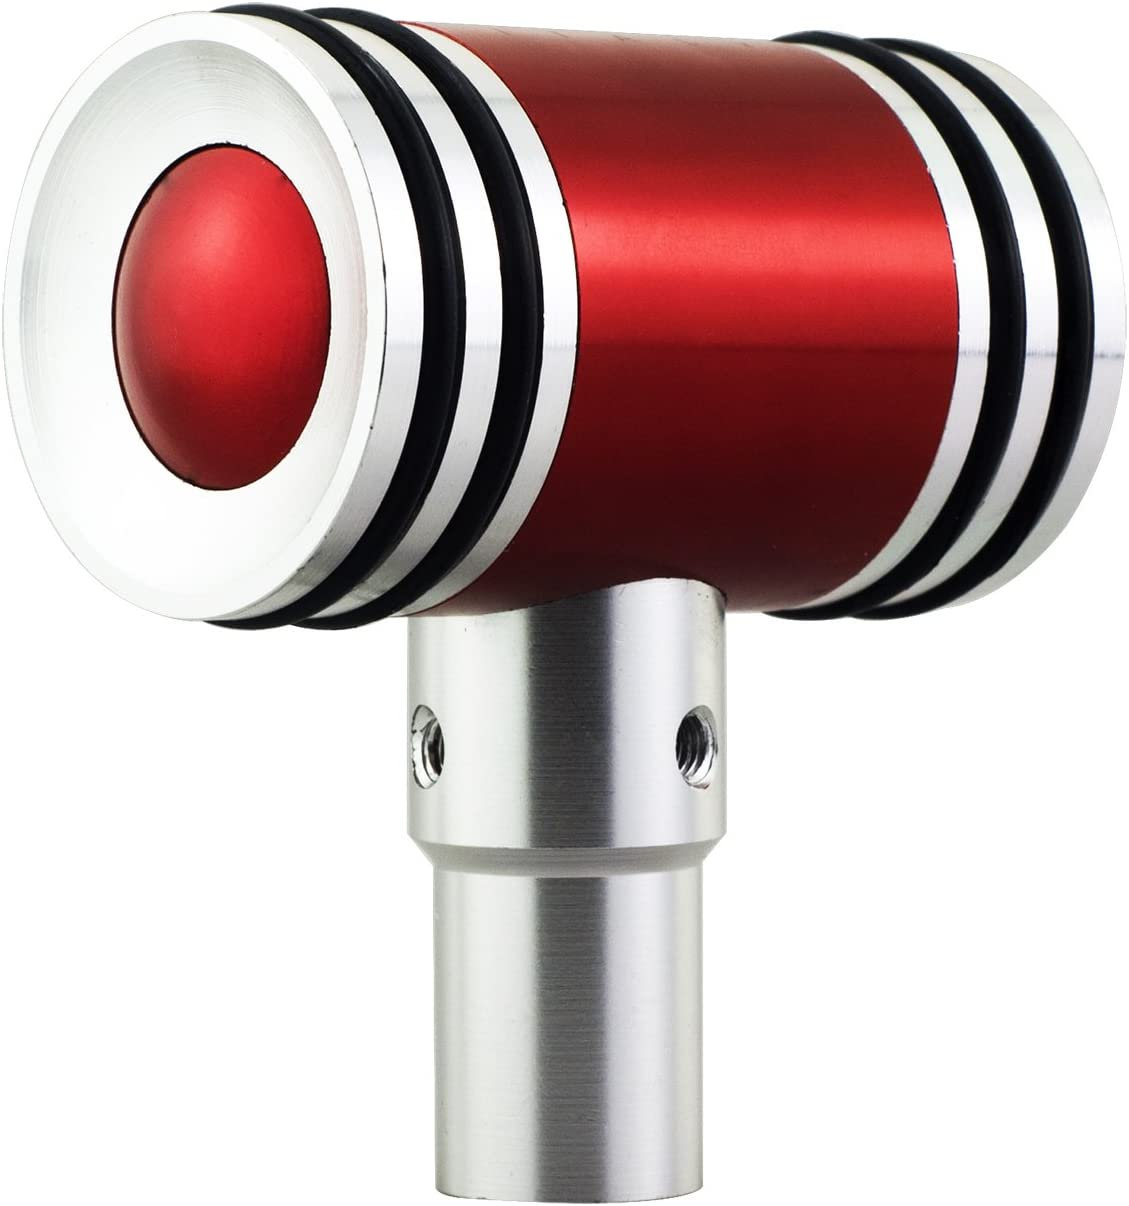 Mavota Red 5 Speed Leathe Car Accessory Gear Stick Shift Shift Knobs Universal Fit for Most Manual Transmission Vehicles